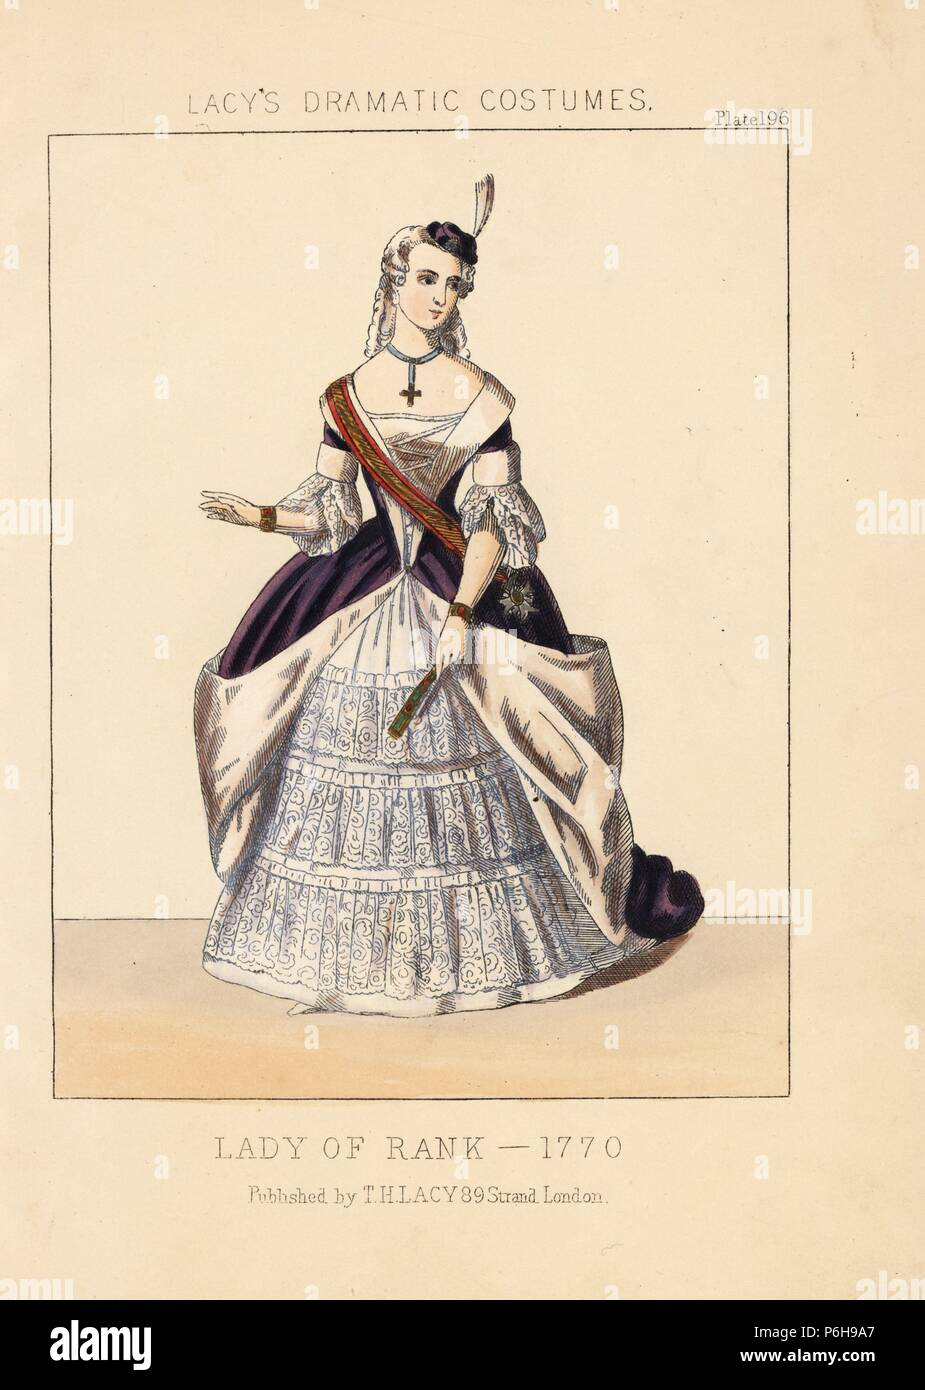 Lady of rank, 1770. She wears a tiny hat with feather, wig, choker with cross, purple dress lined with fur, lace sleeves, sash, and embroidered petticoat. Handcoloured lithograph from Thomas Hailes Lacy's 'Female Costumes Historical, National and Dramatic in 200 Plates,' London, 1865. Lacy (1809-1873) was a British actor, playwright, theatrical manager and publisher. - Stock Image